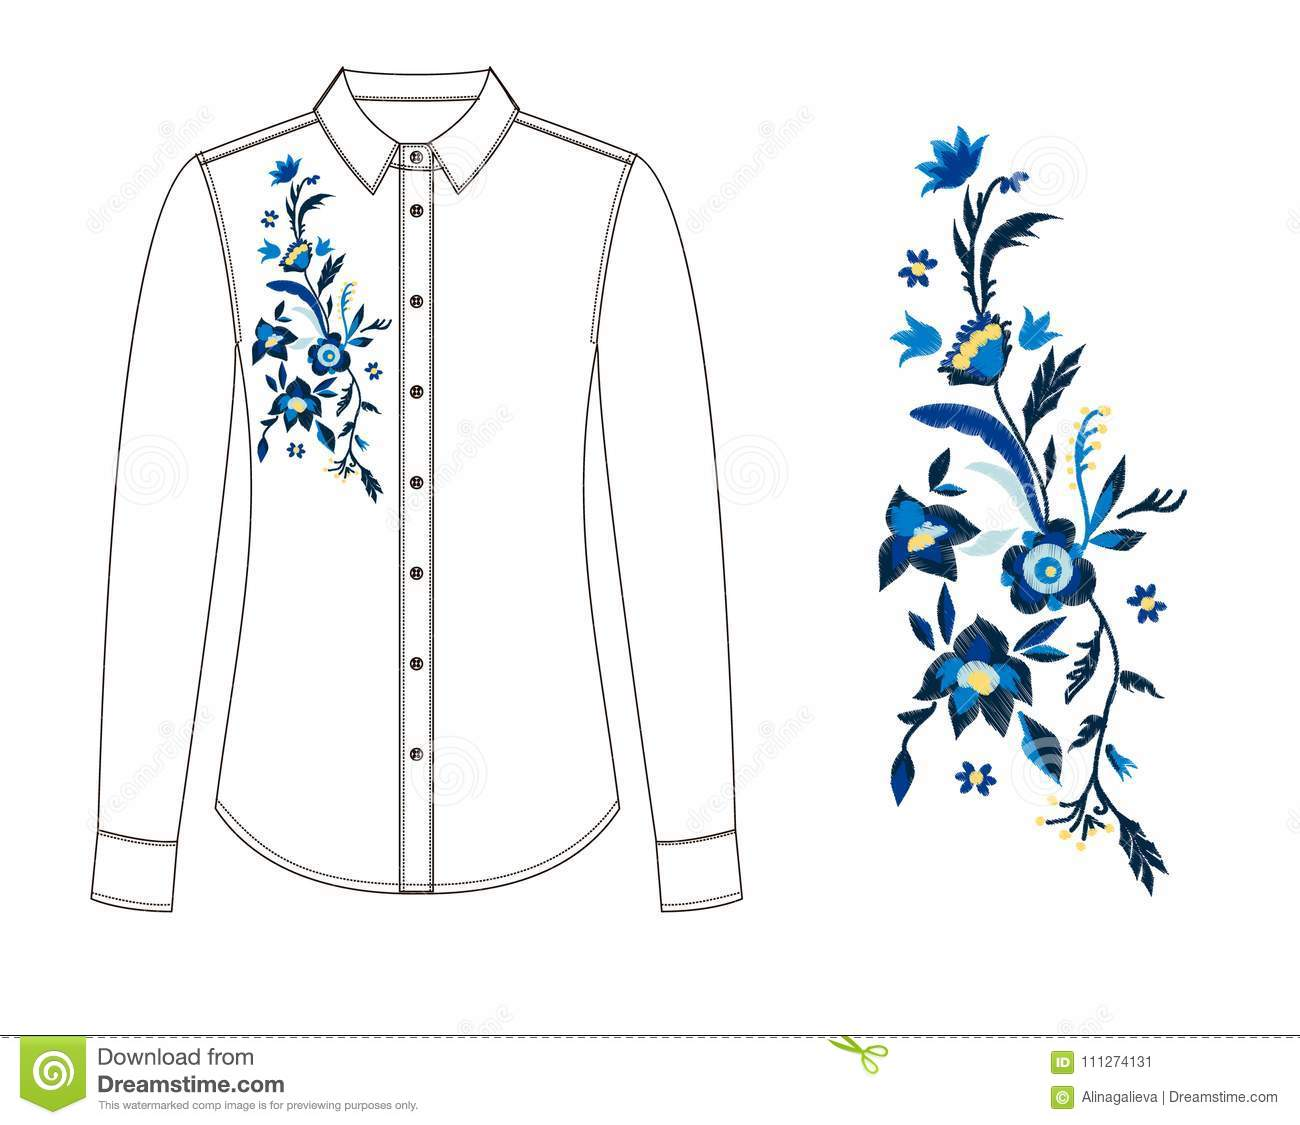 Sketch of parts of blouse with embroidery stock illustration download sketch of parts of blouse with embroidery stock illustration illustration of flower izmirmasajfo